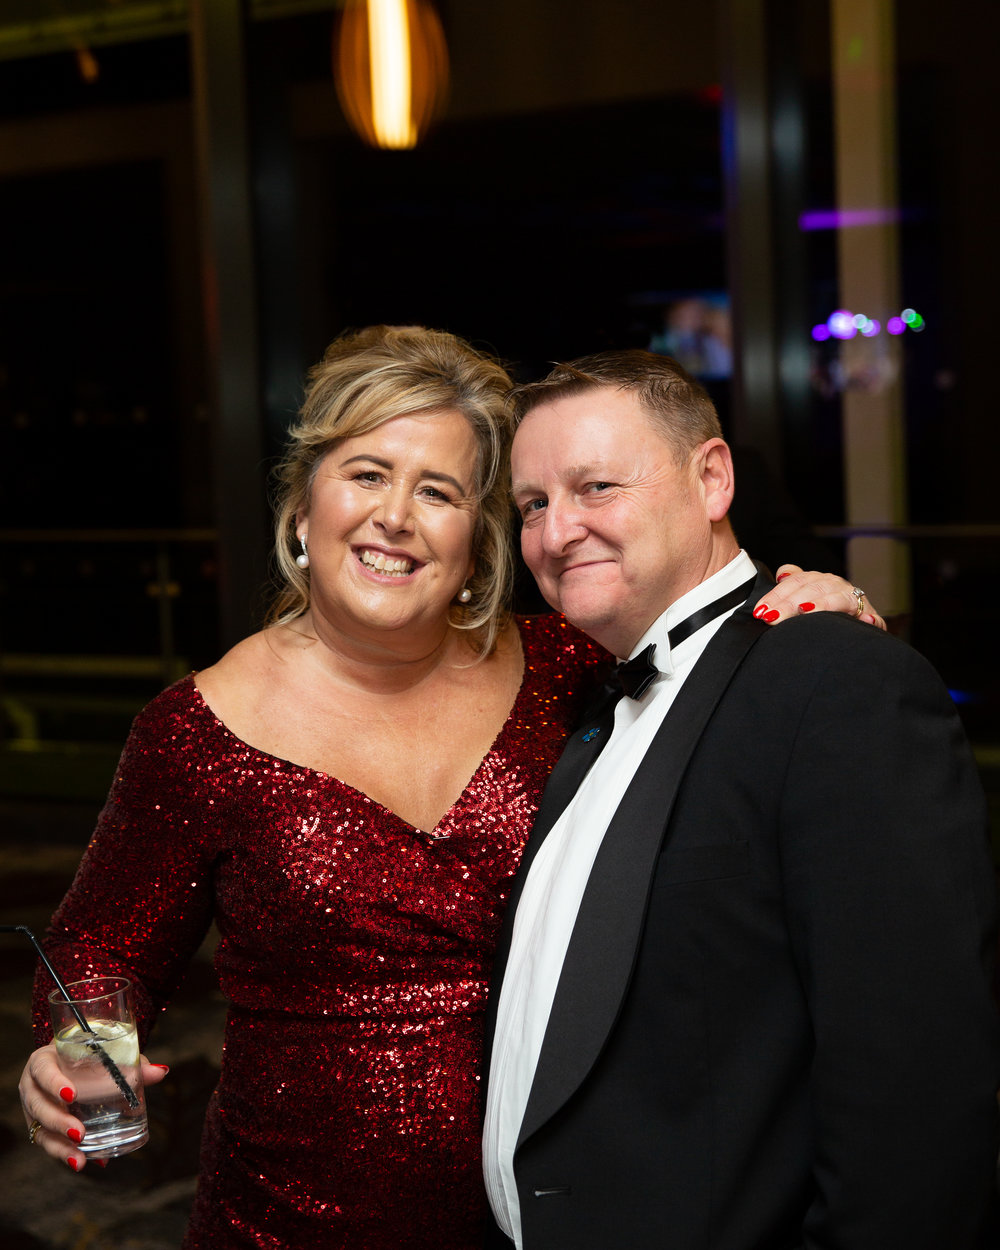 Claire Meldrum Photography PKC-3320.jpg Party photography Staffordshire